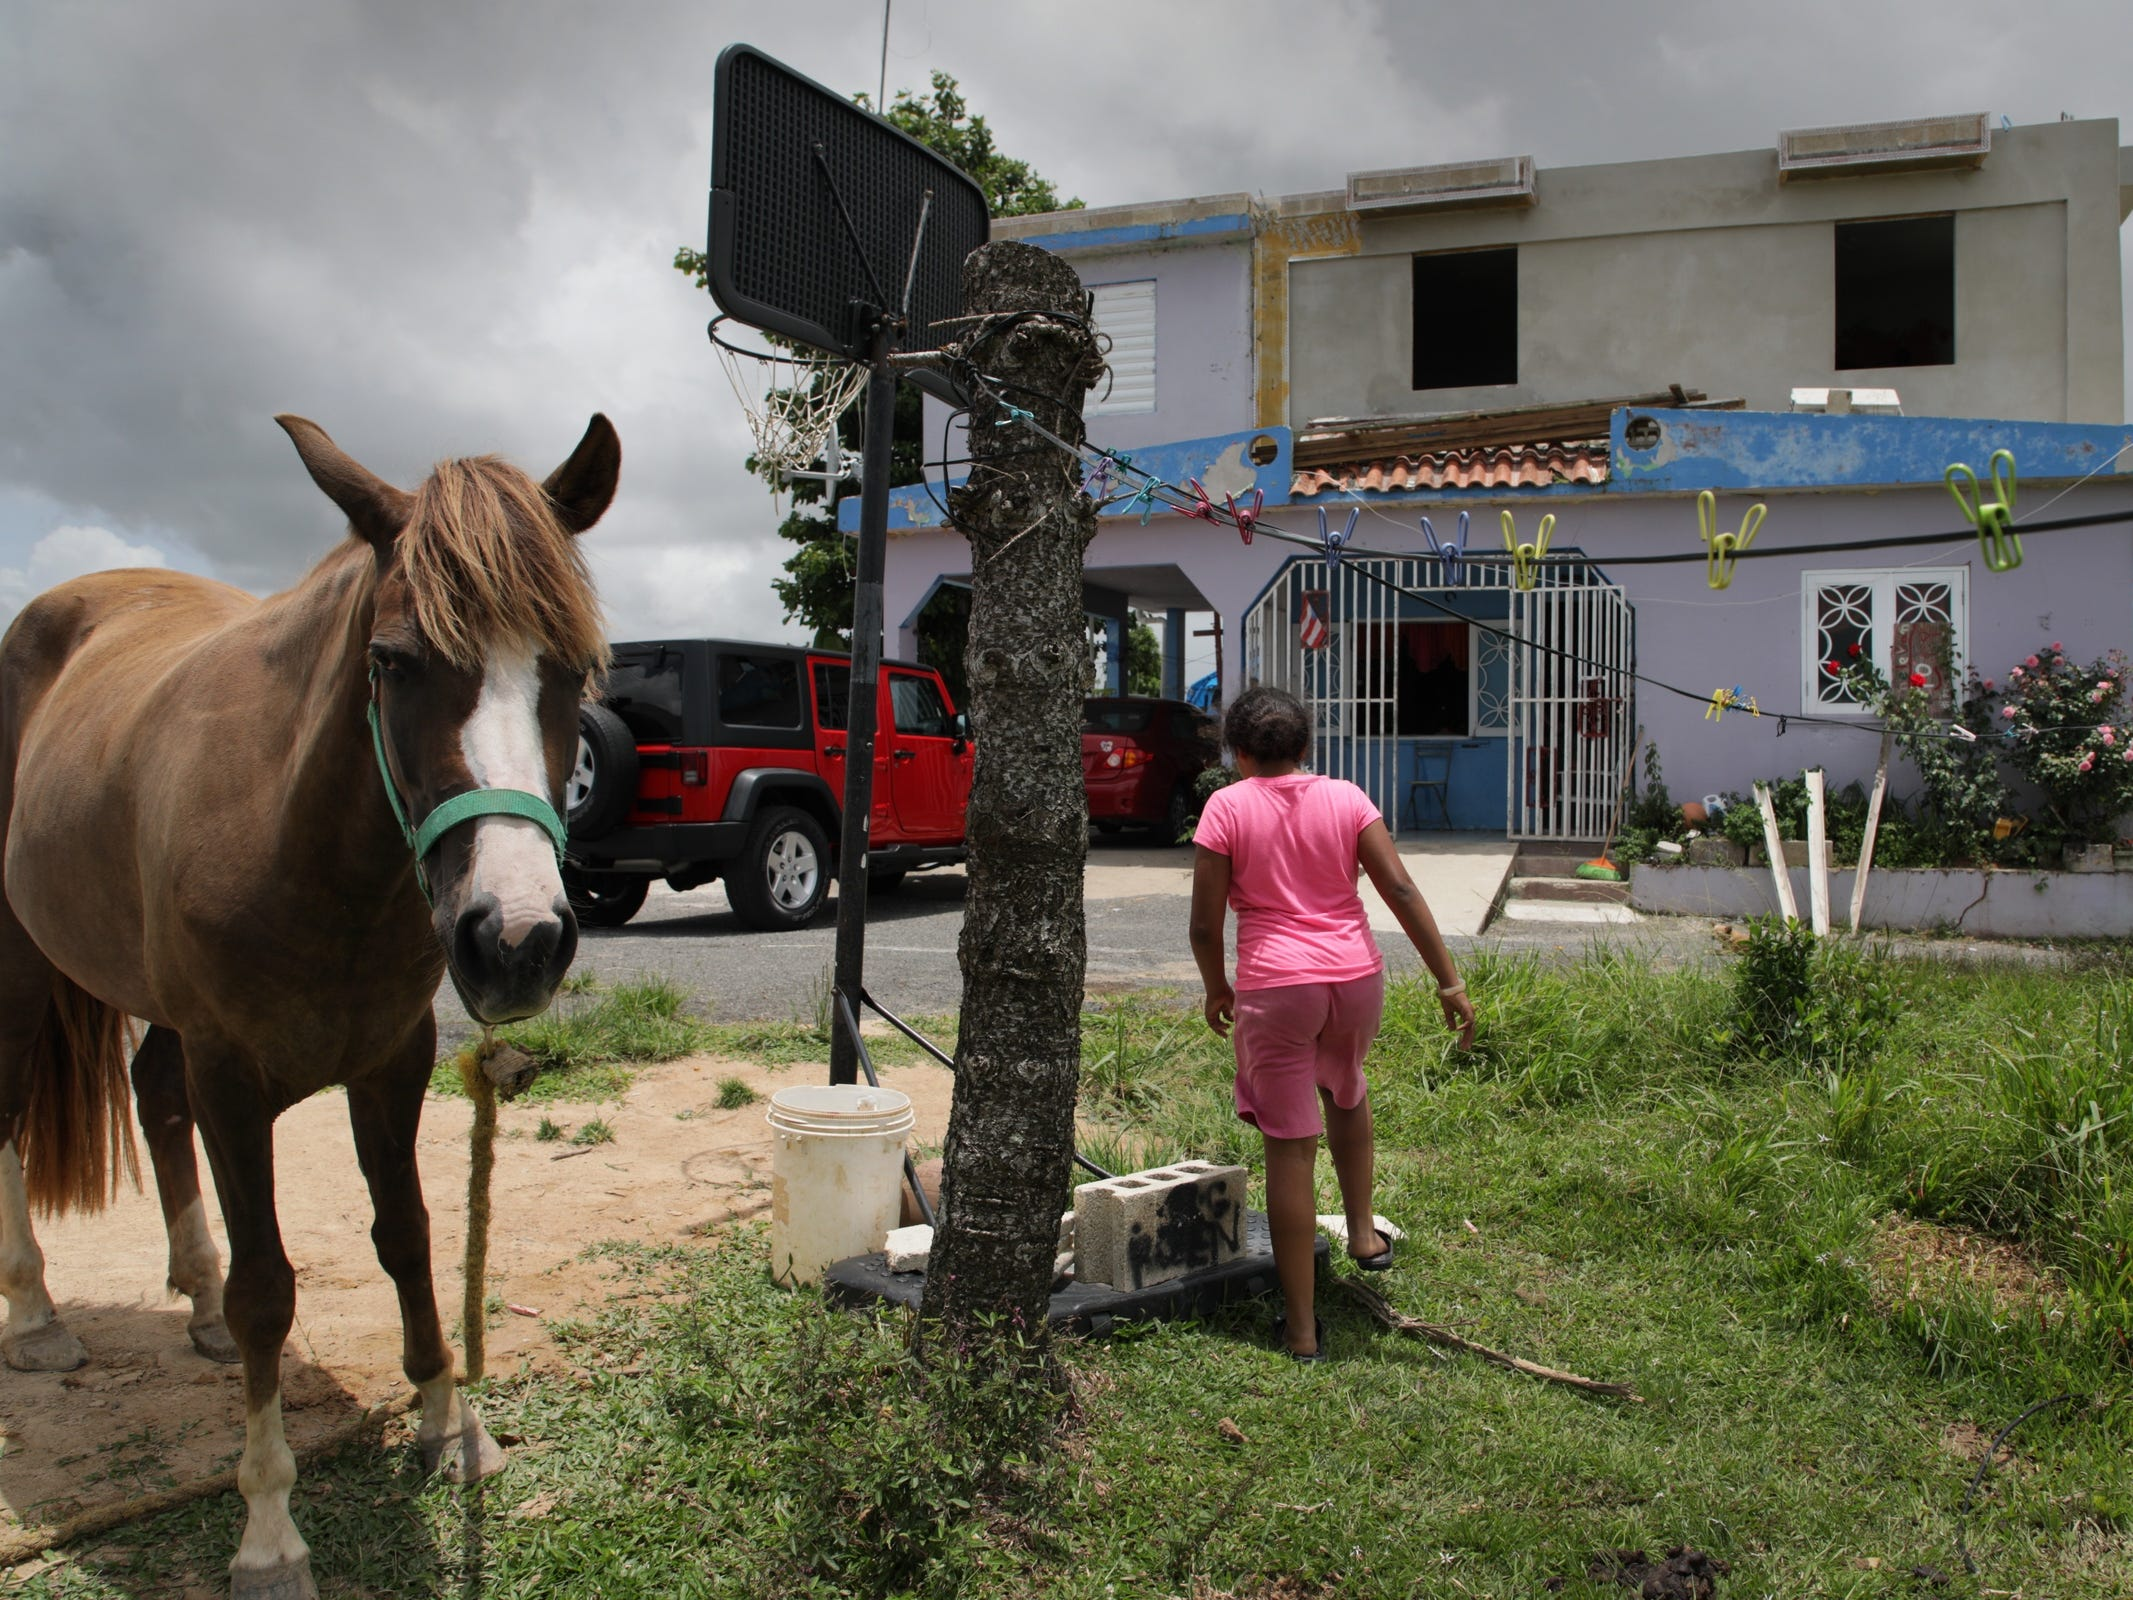 Nayeli Aponte 12 walks back to the house she shares with eight other family members since Hurricane Maria devastated the country.